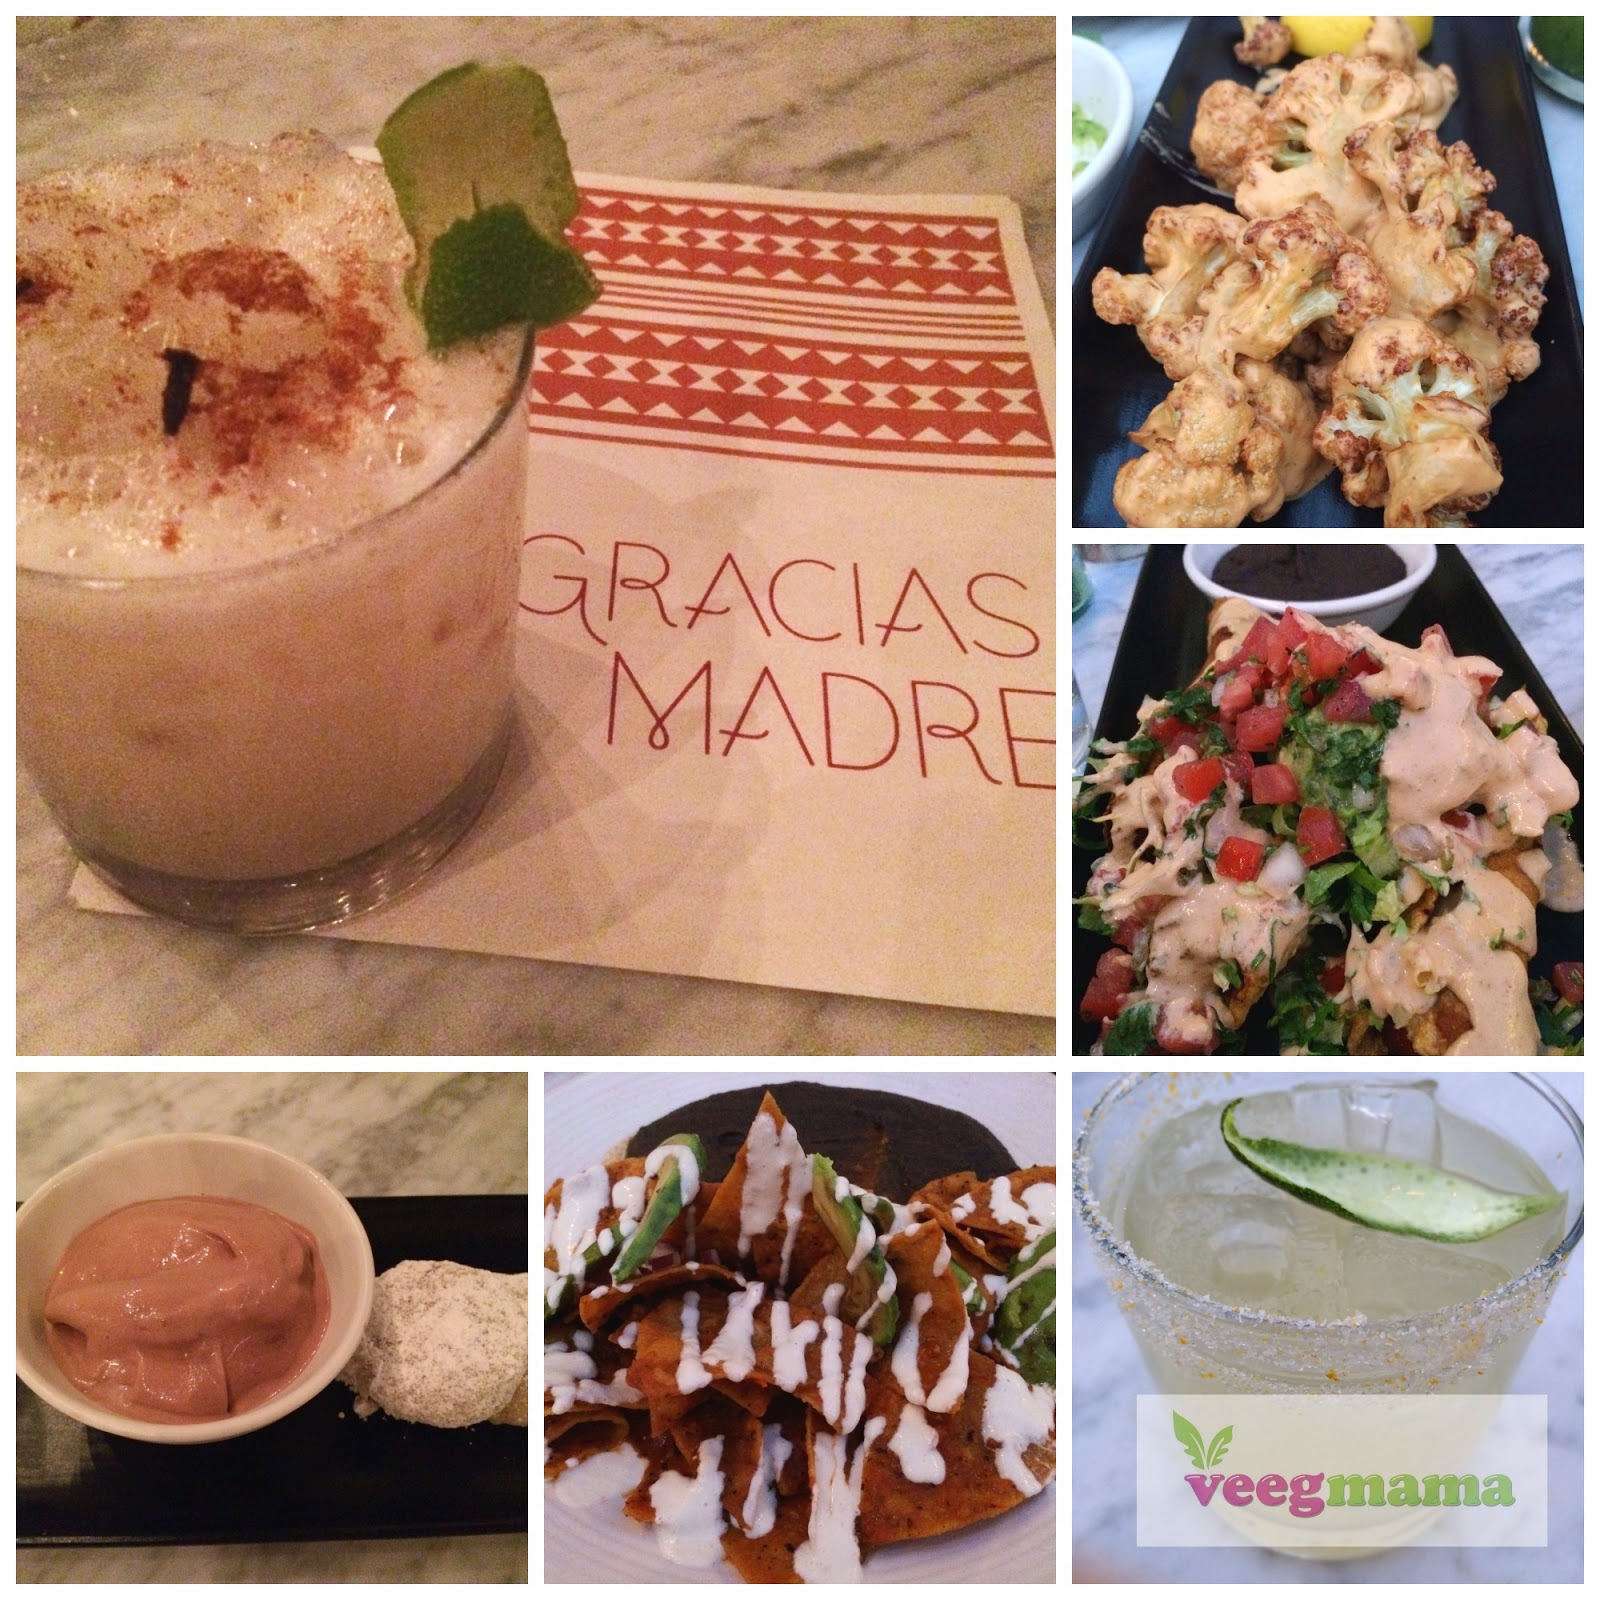 VeegMama's review of Gracias Madre West Hollywood